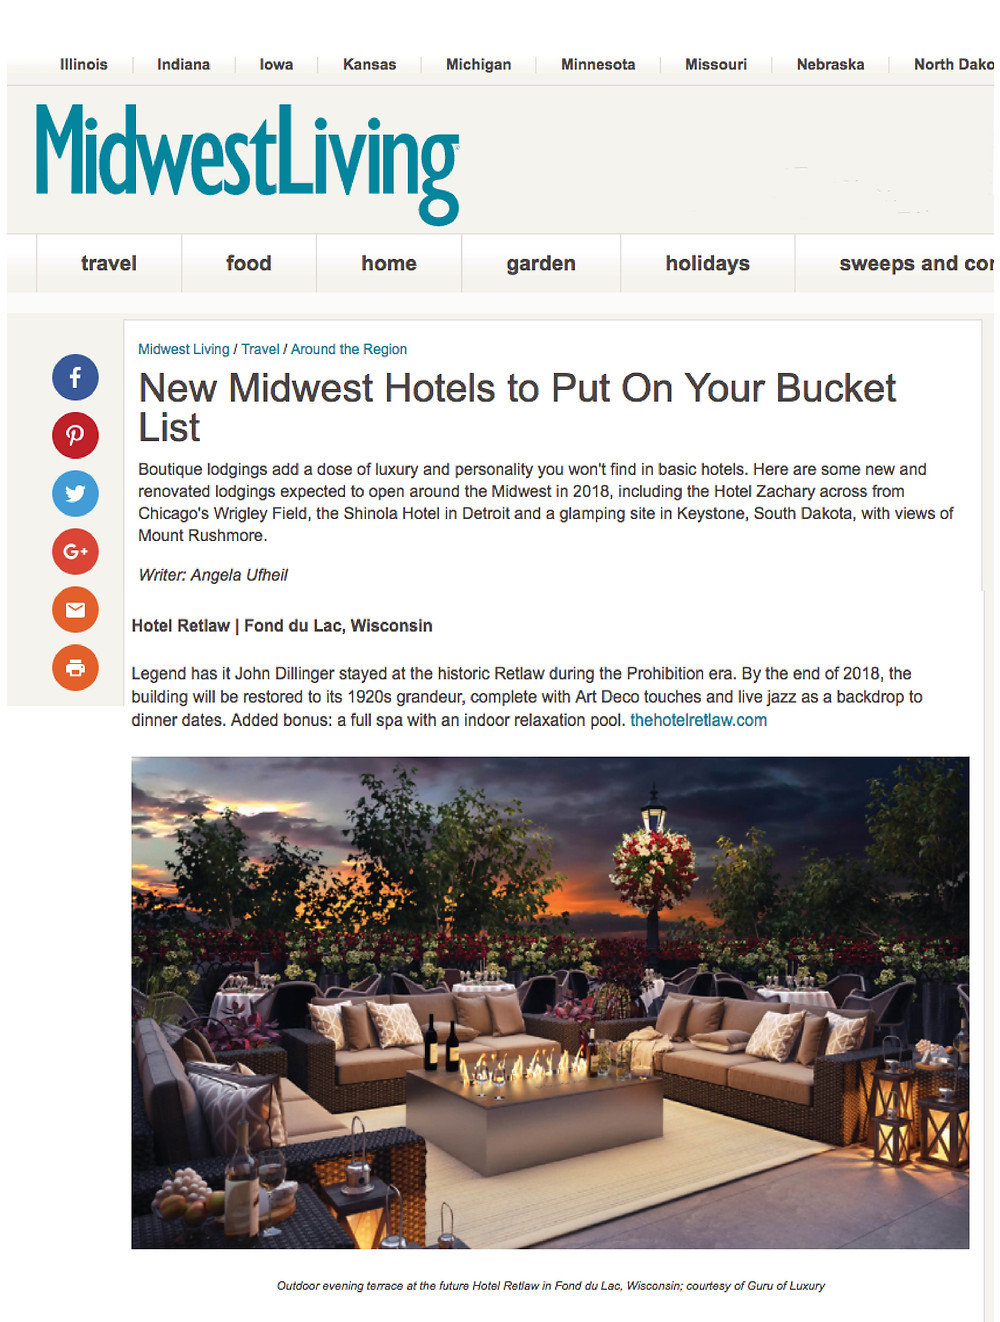 New Midwest Hotels to Put On Your Bucket List